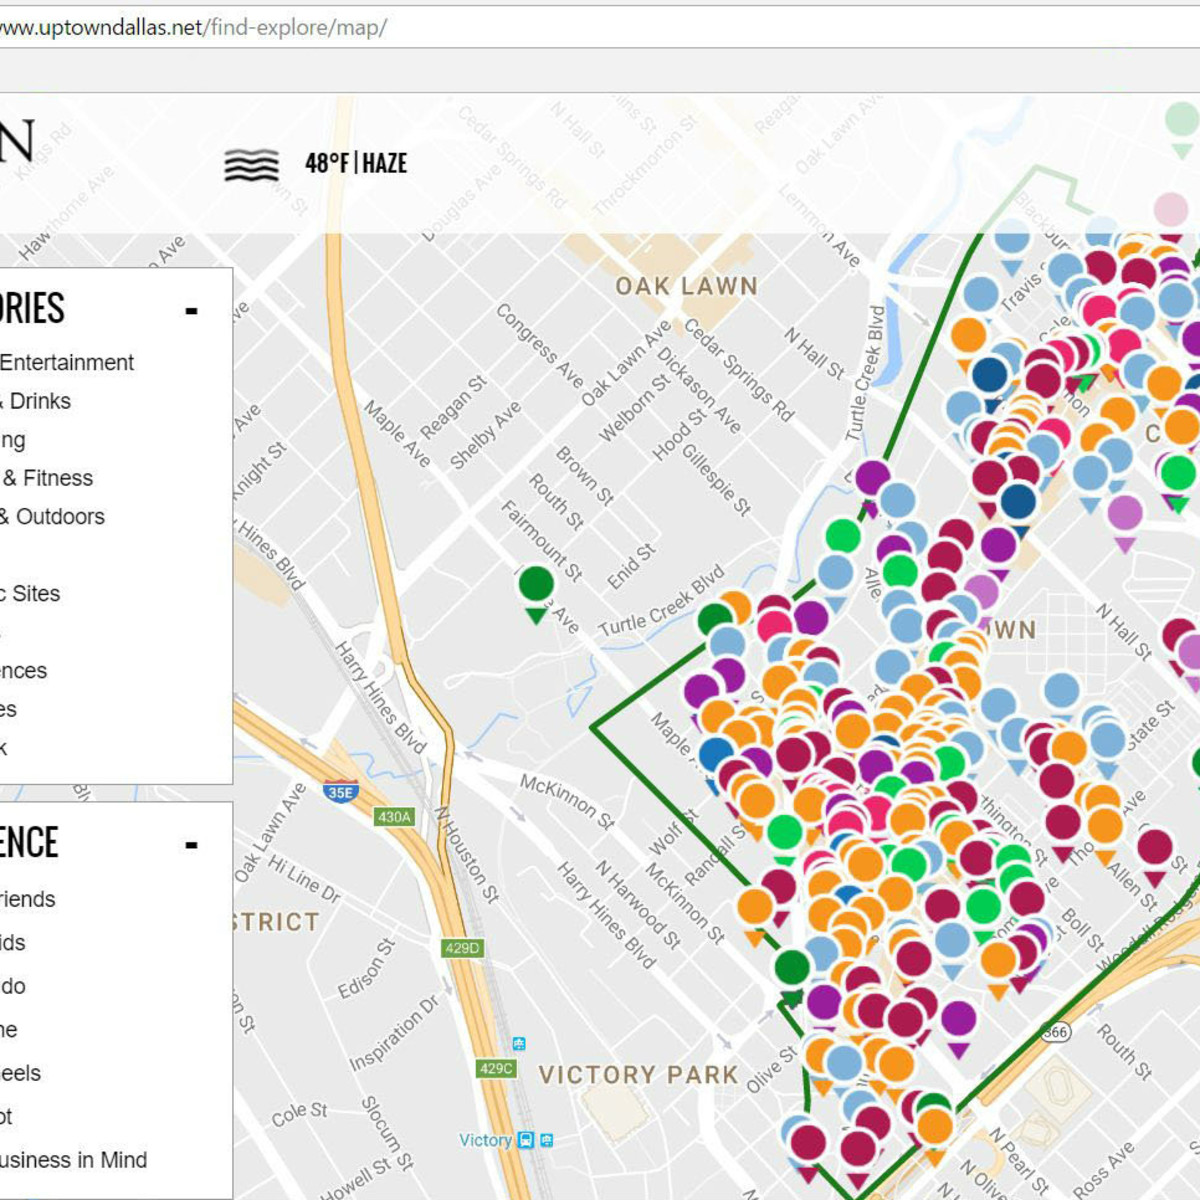 Uptown Dallas Inc new website map